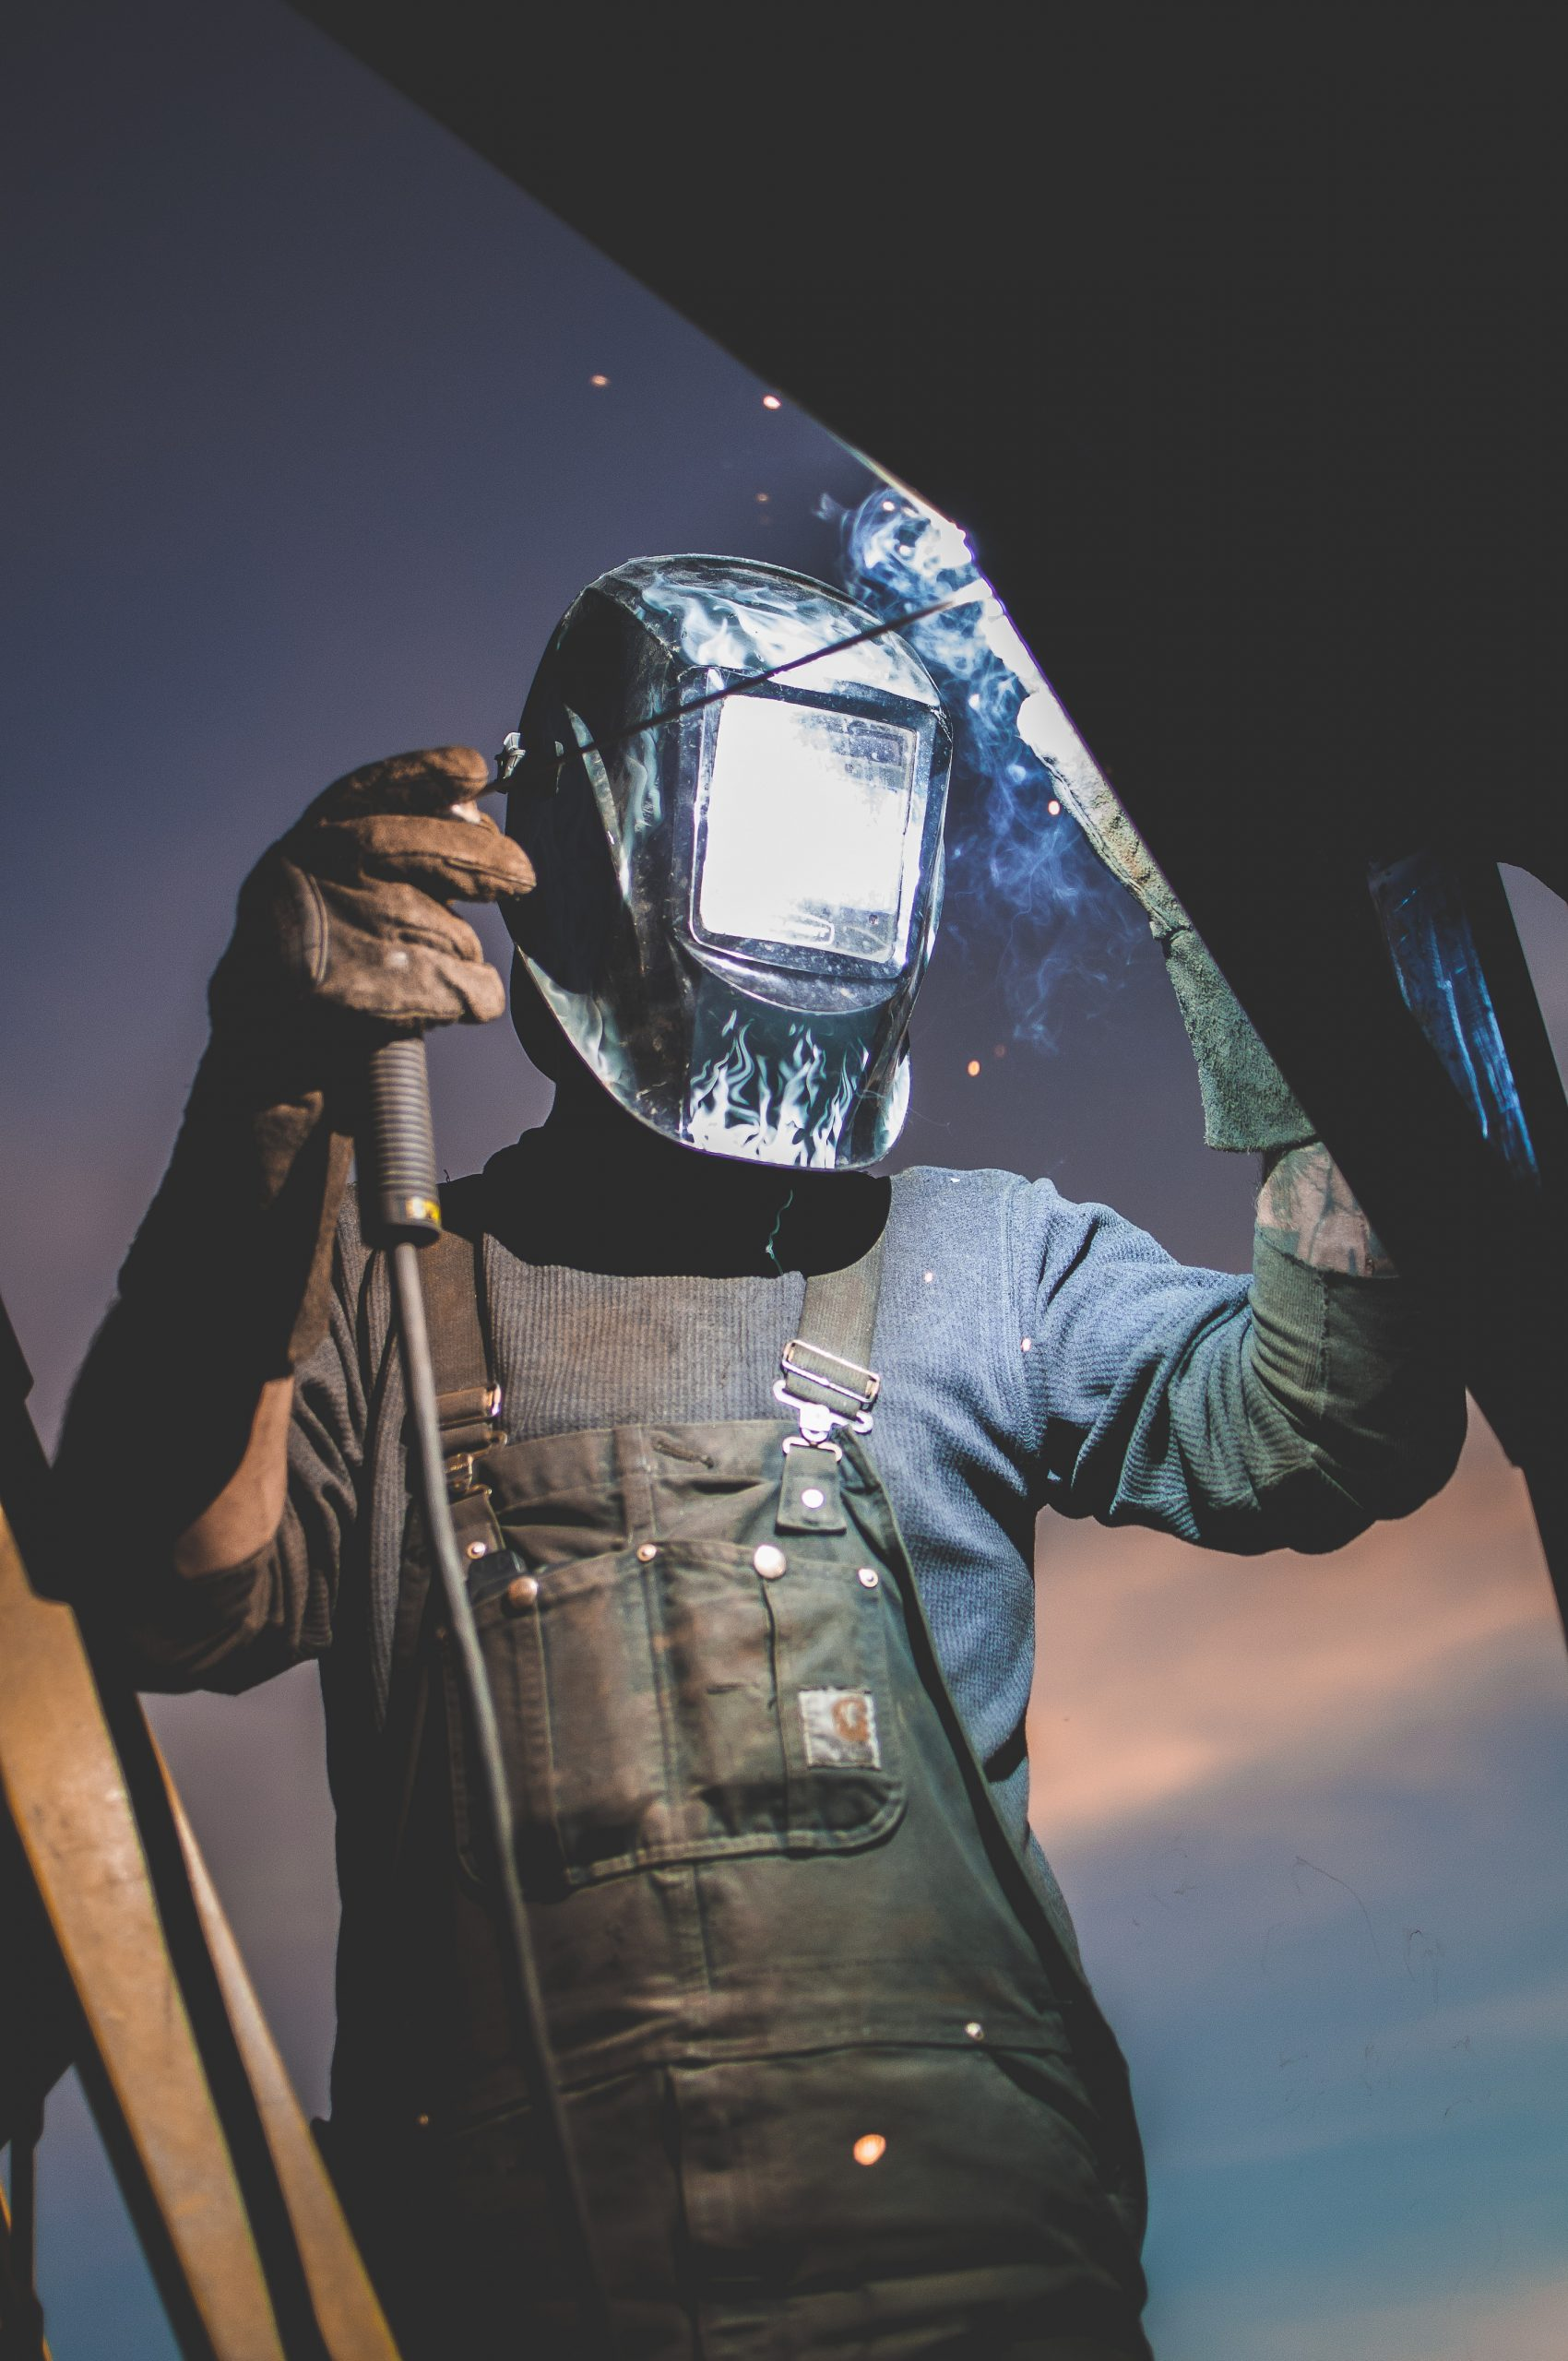 Getting into welding